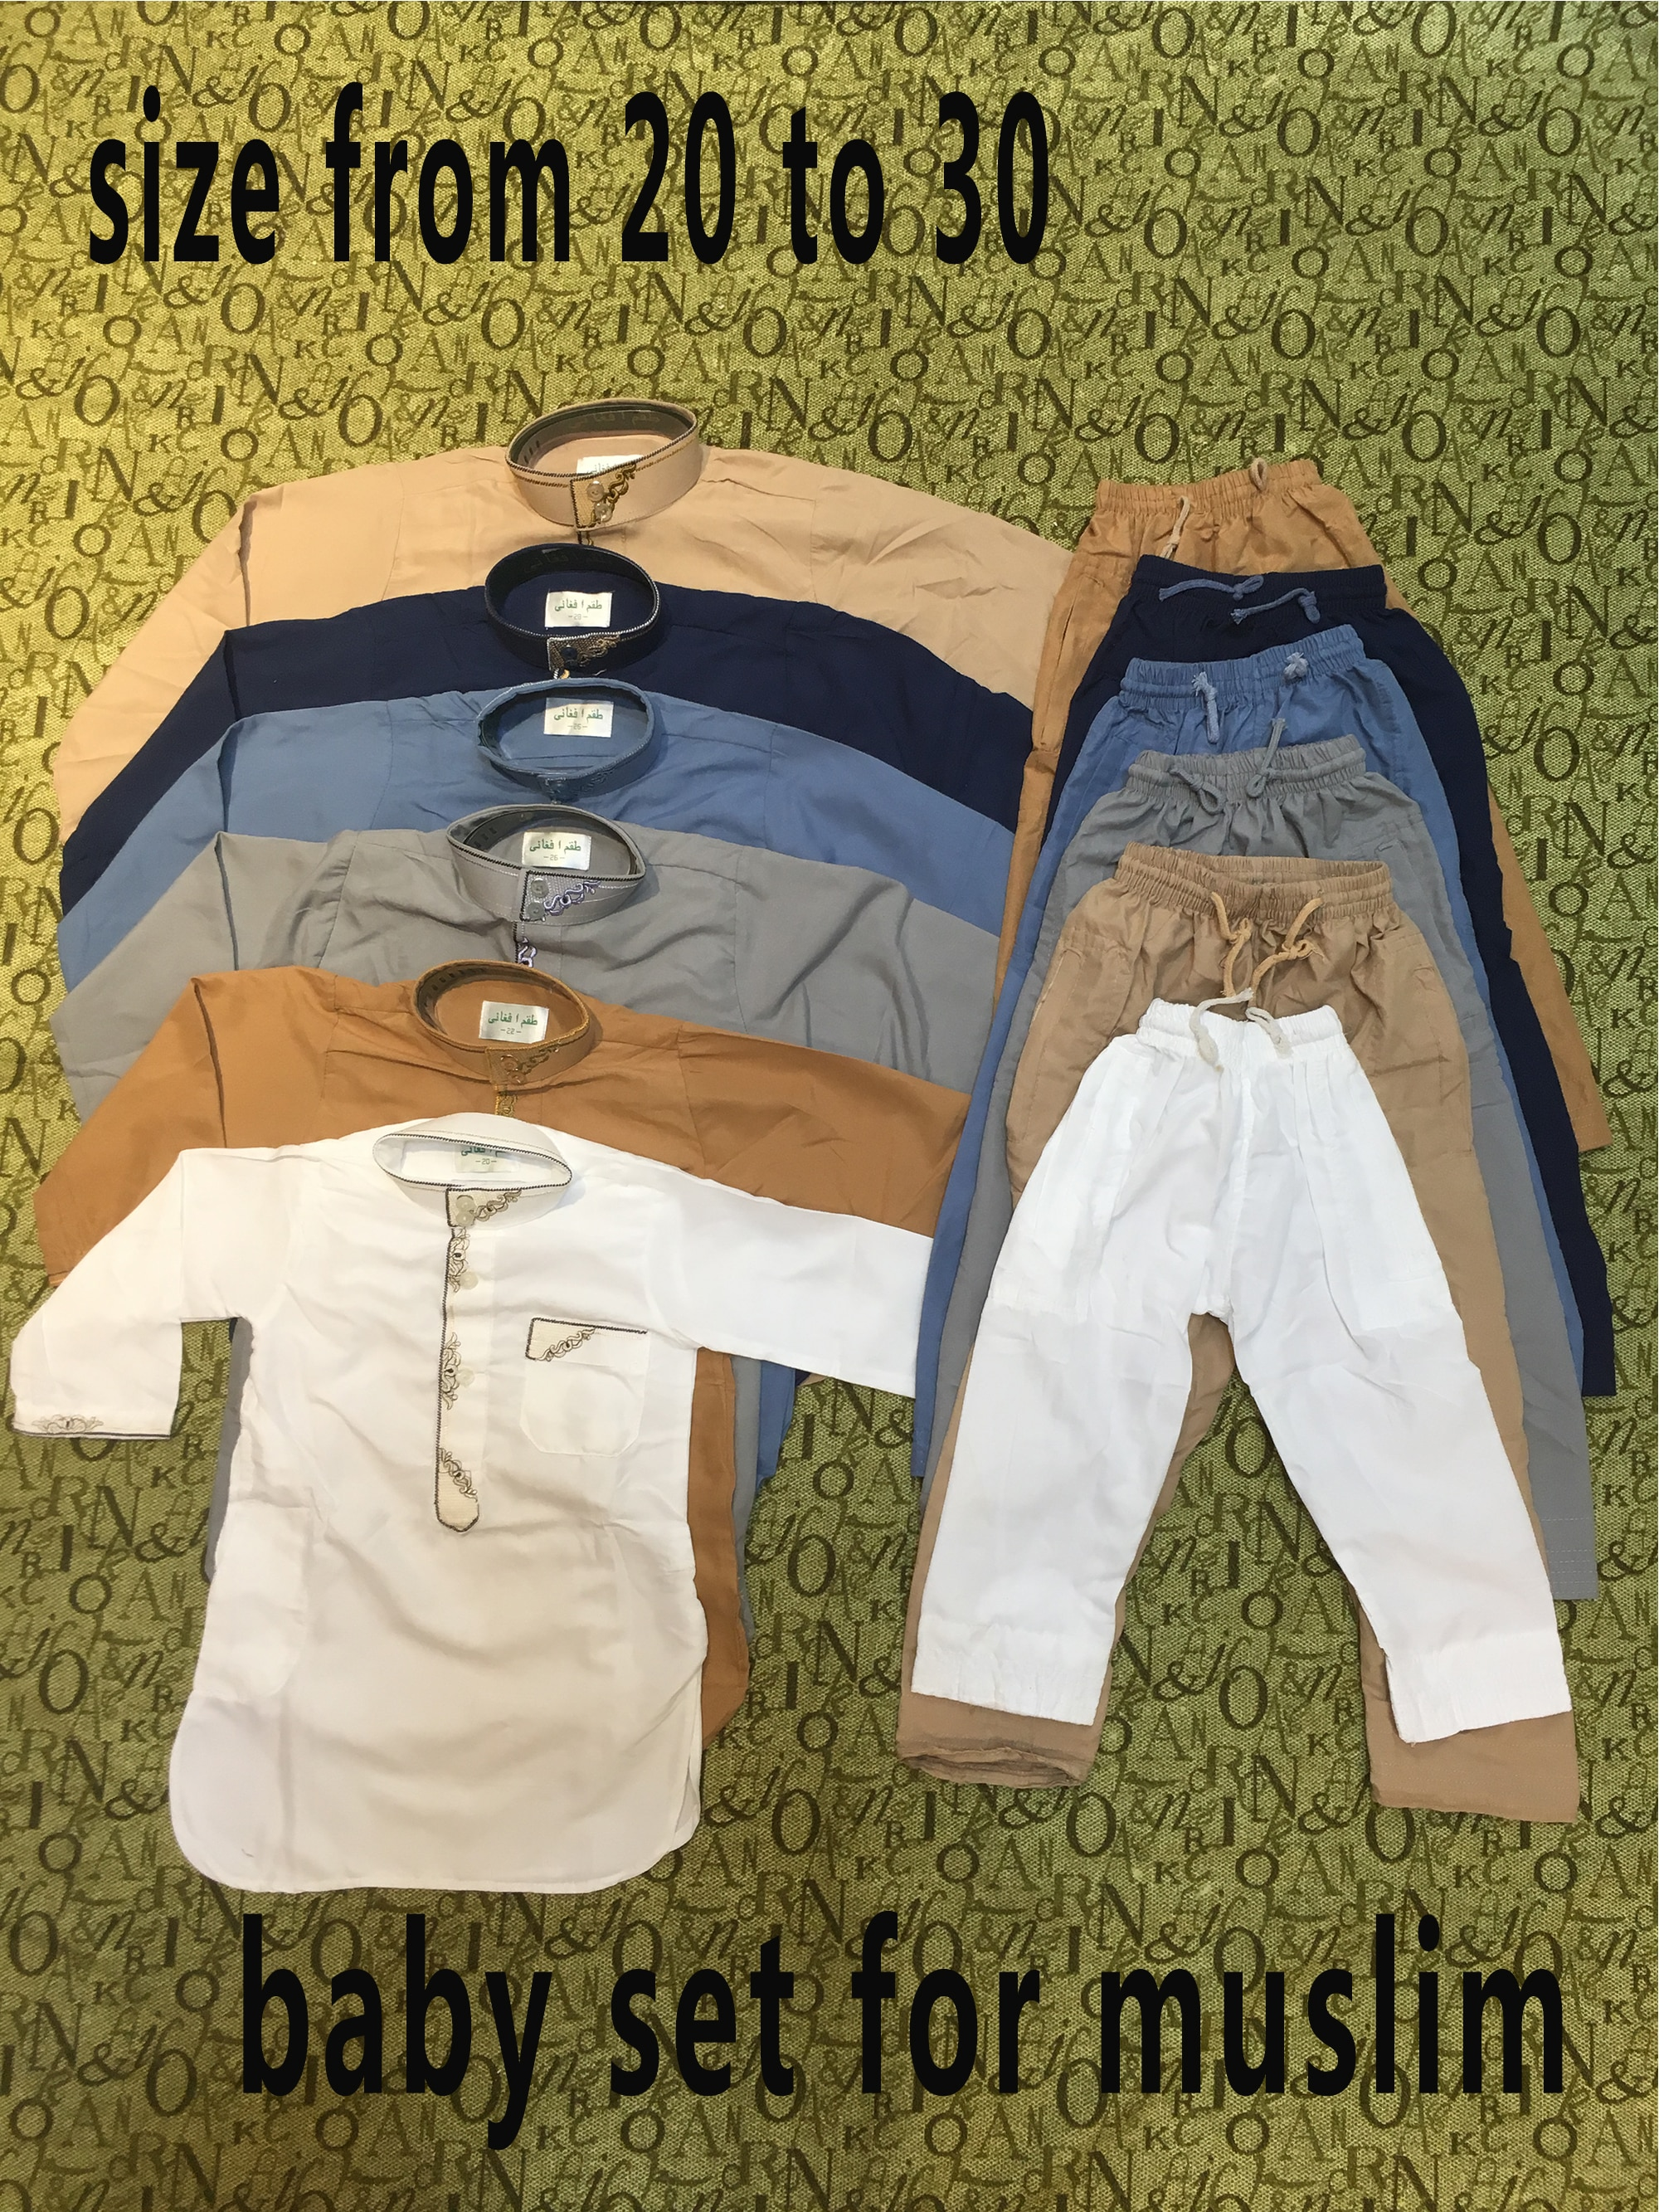 2020 Fashionable Jubba Thobe Embroidery 6 month to 5 years Qatar style Worship Suit for muslim aby boy to pray  Ramadan